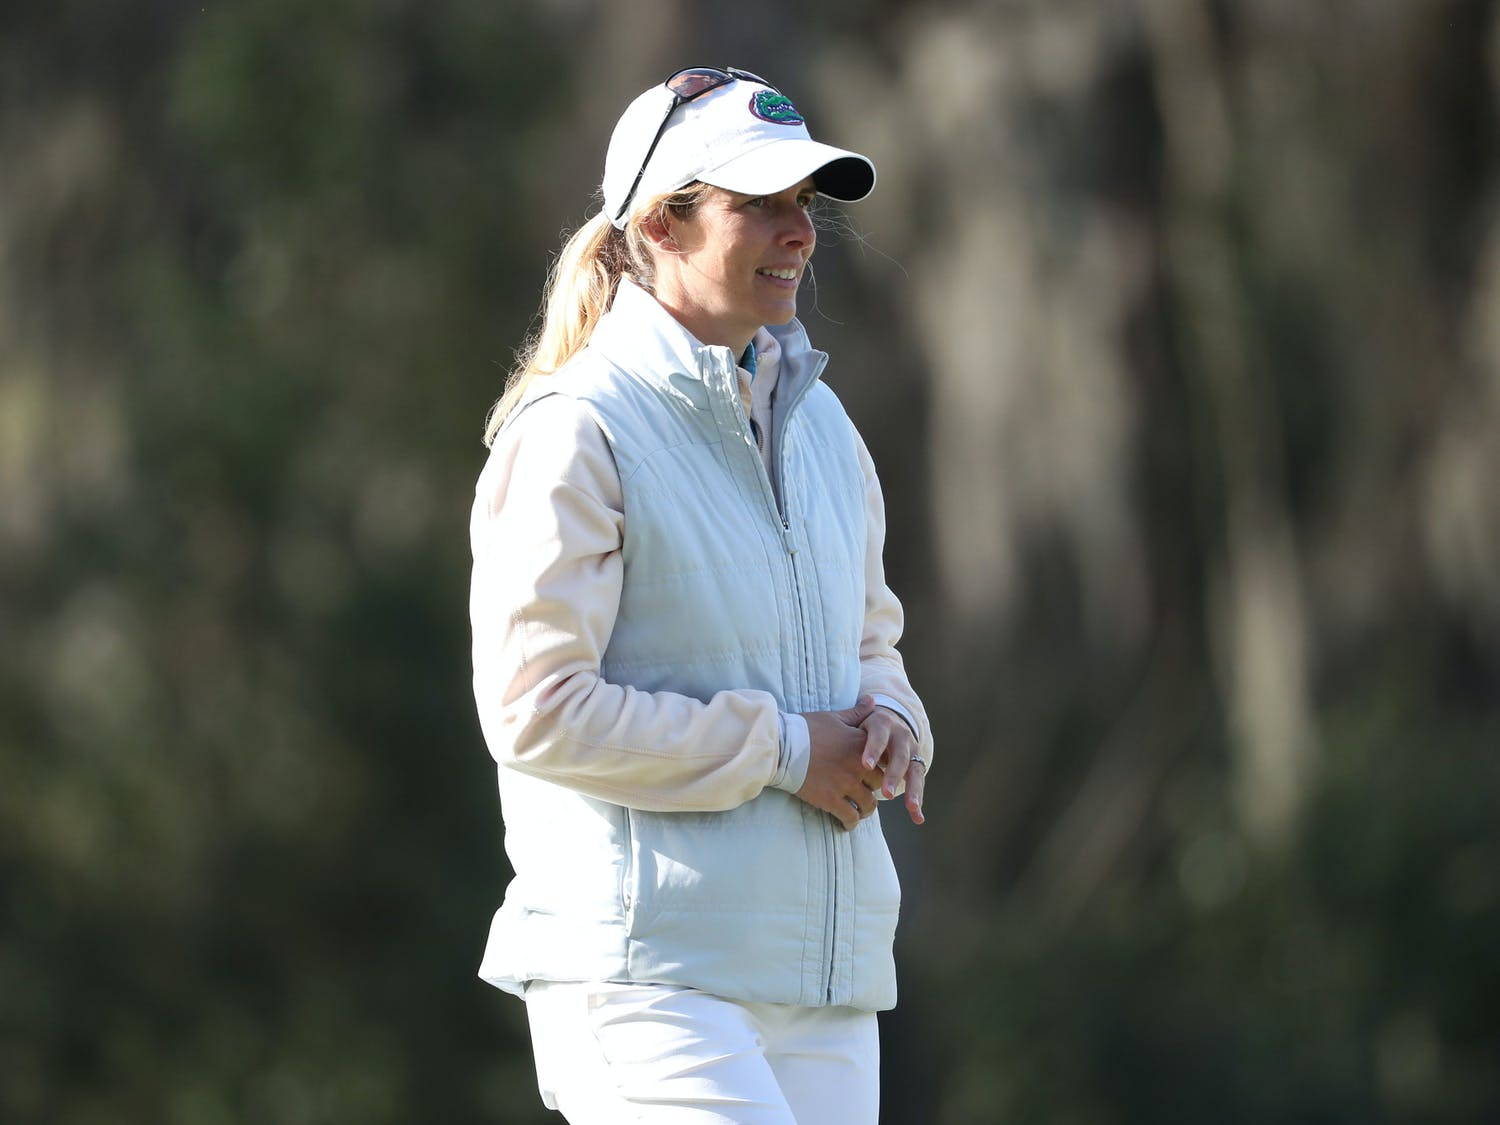 Florida Gators women's golf coach Emily Glaser on Monday, February 22, 2021 at the Mark Bostick Golf Course in Gainesville, FL. The women's golf team released its schedule for 2021-22 season Friday. Photo courtesy of the UAA.